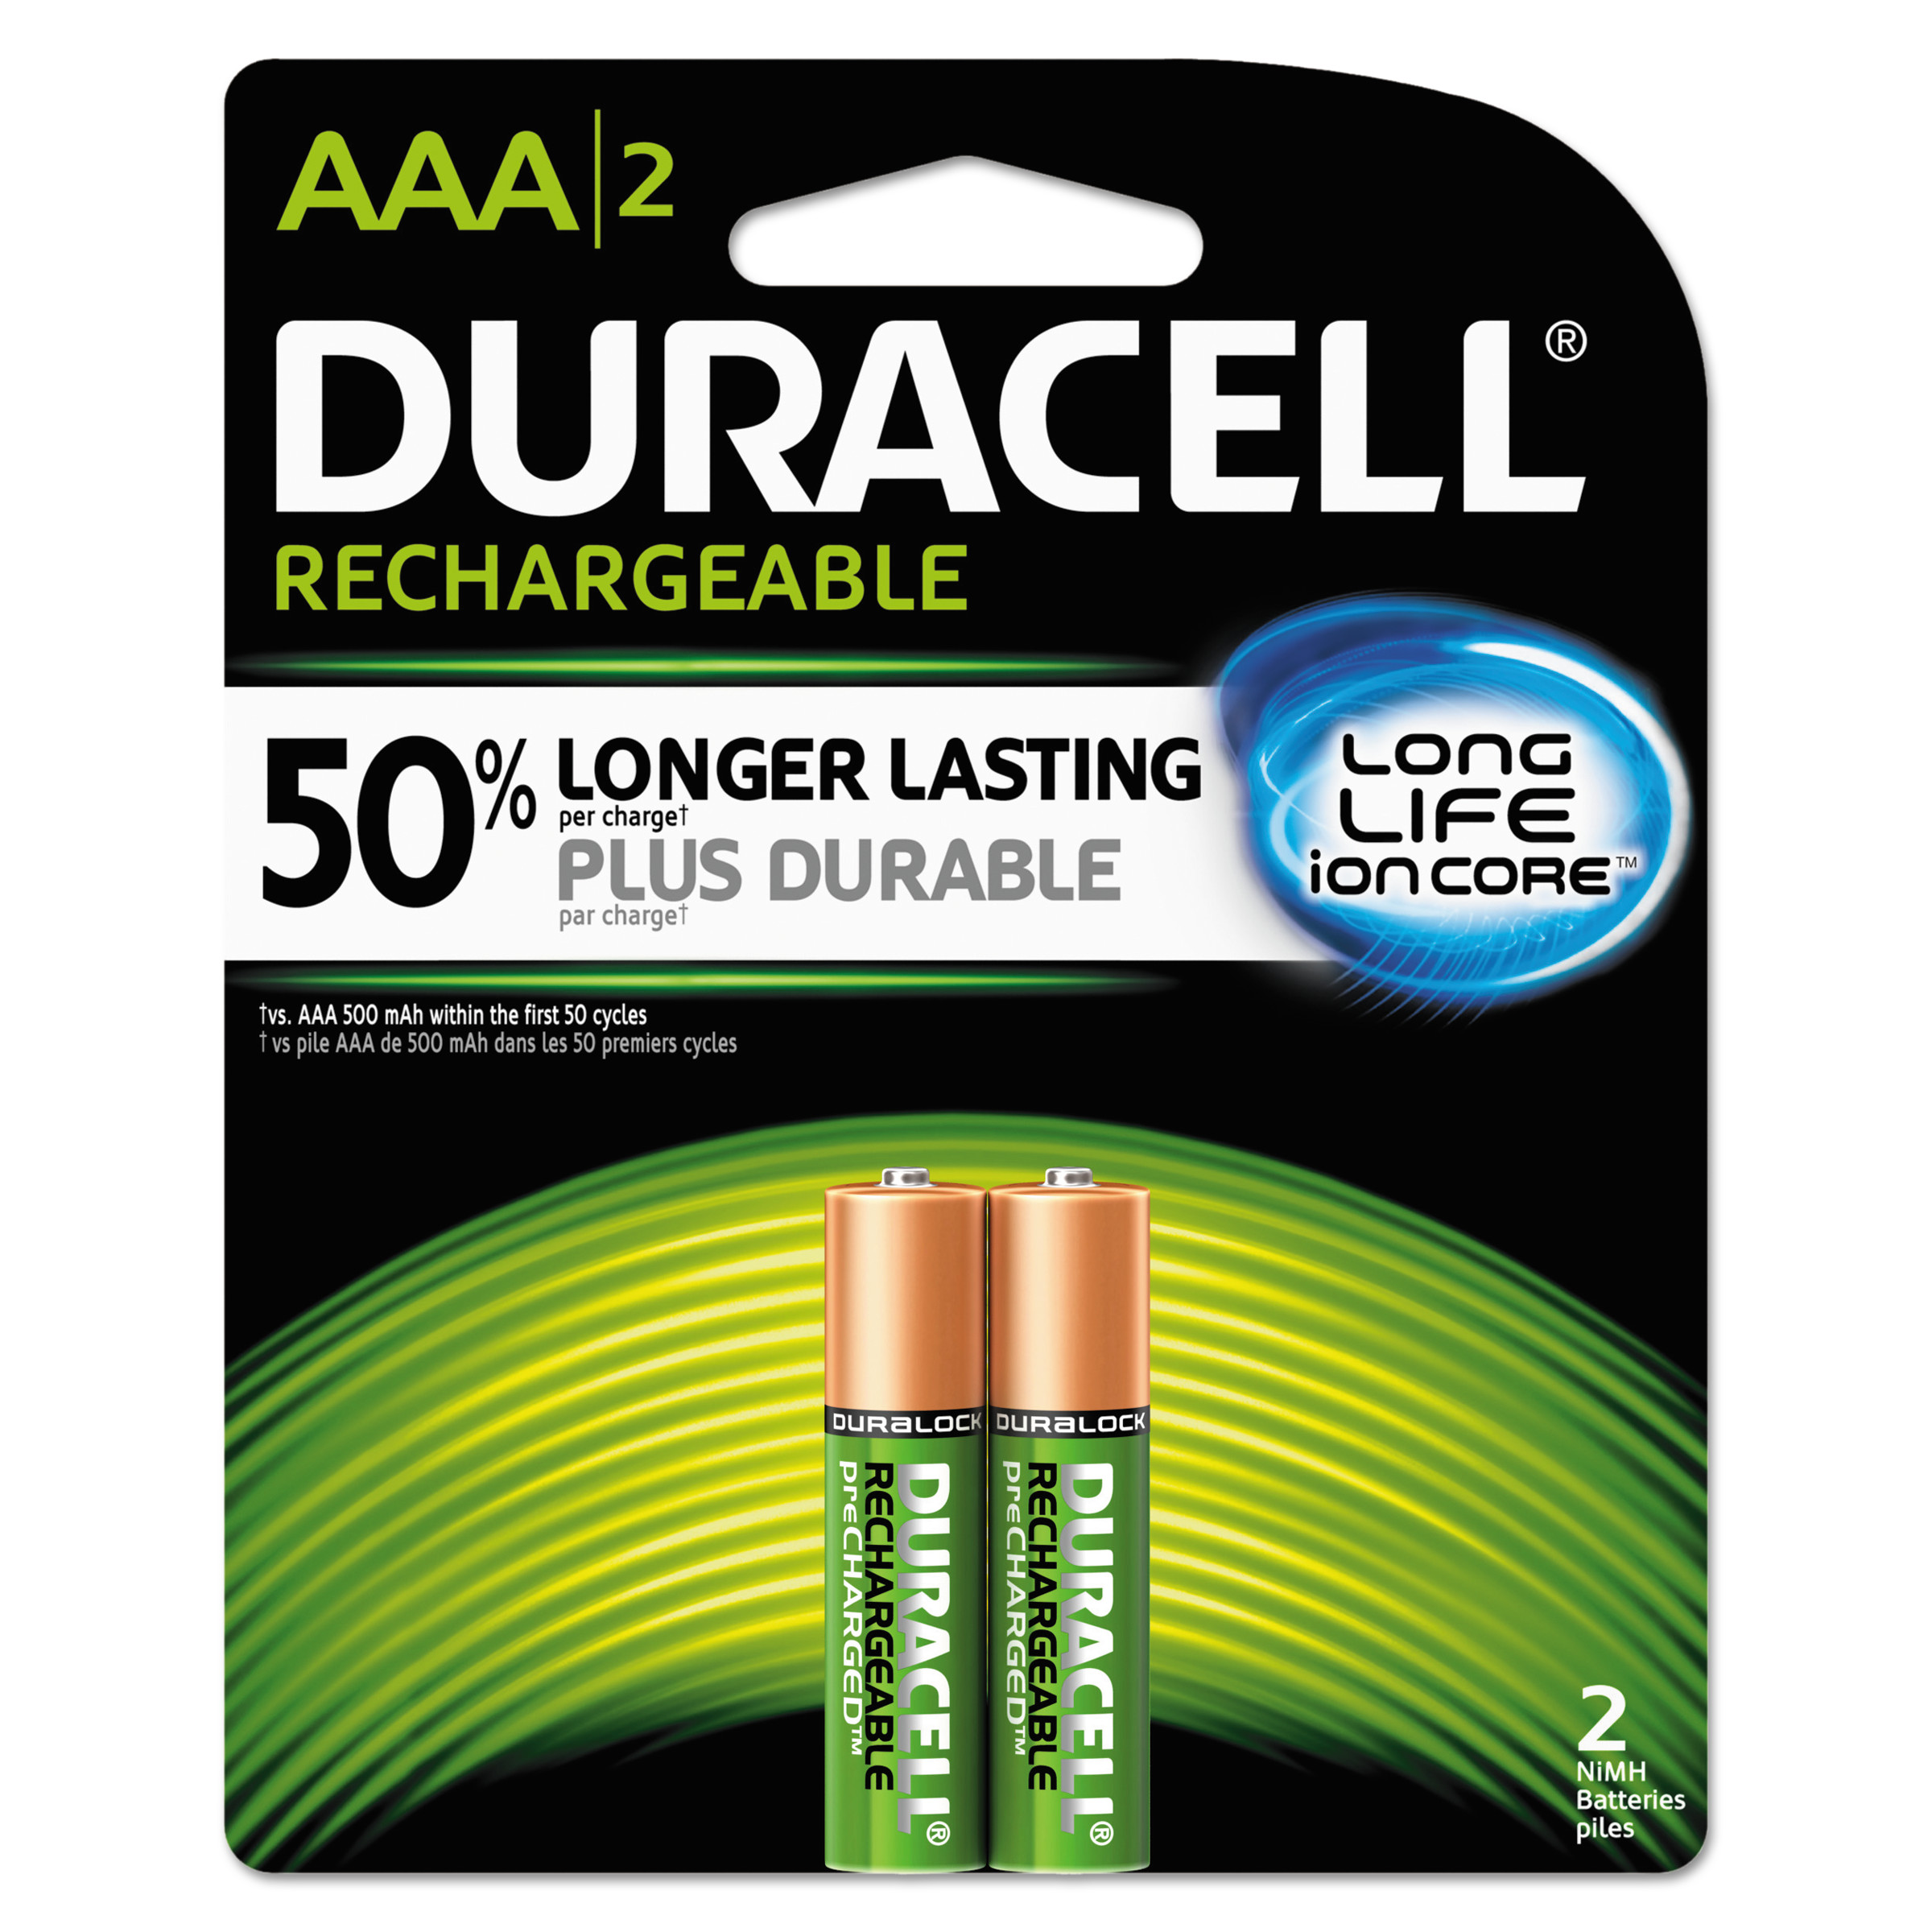 Duracell Rechargeable NiMH Batteries, AAA, 2/PK